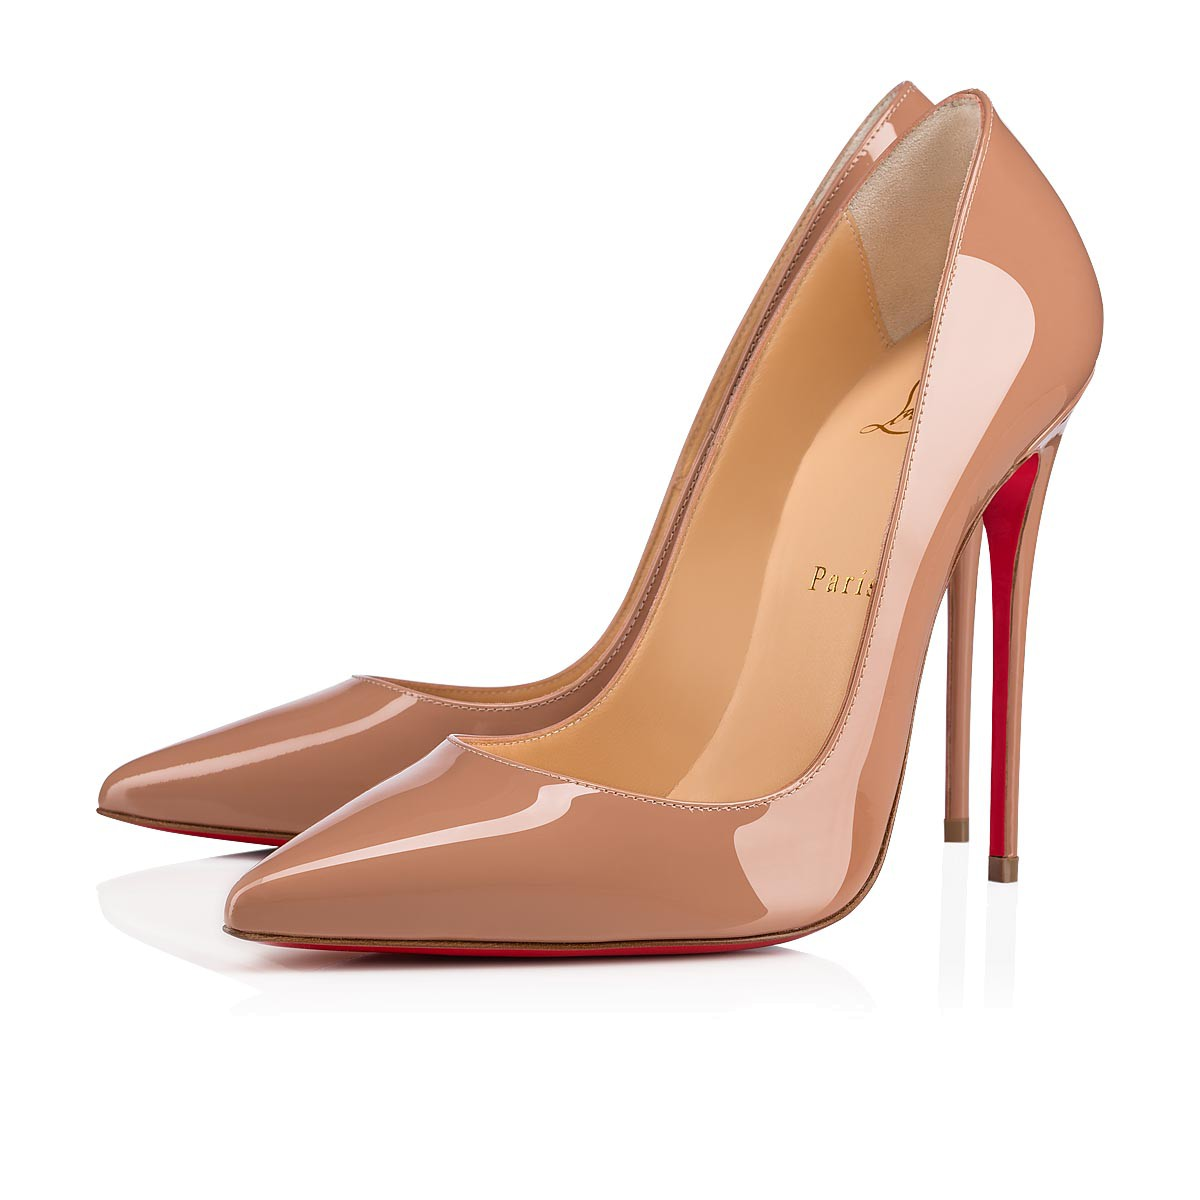 b10c61061a2 So Kate 120 Nude Patent Leather - Women Shoes - Christian Louboutin